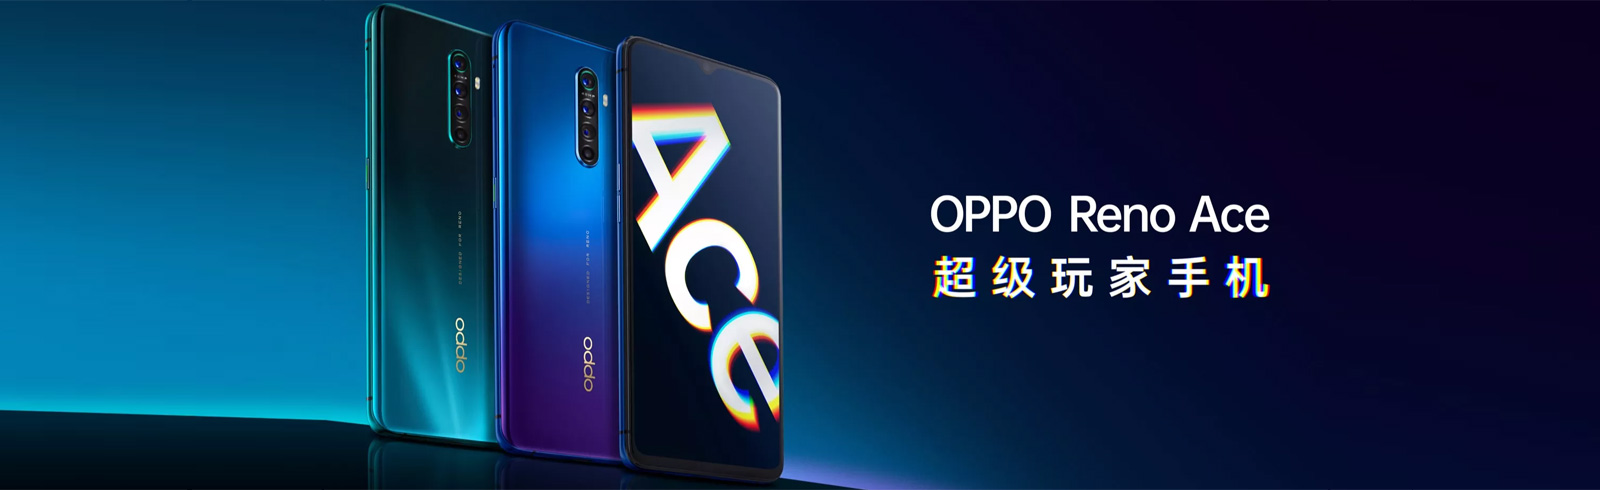 Oppo Reno Ace and Oppo K5 - specs, prices and availability